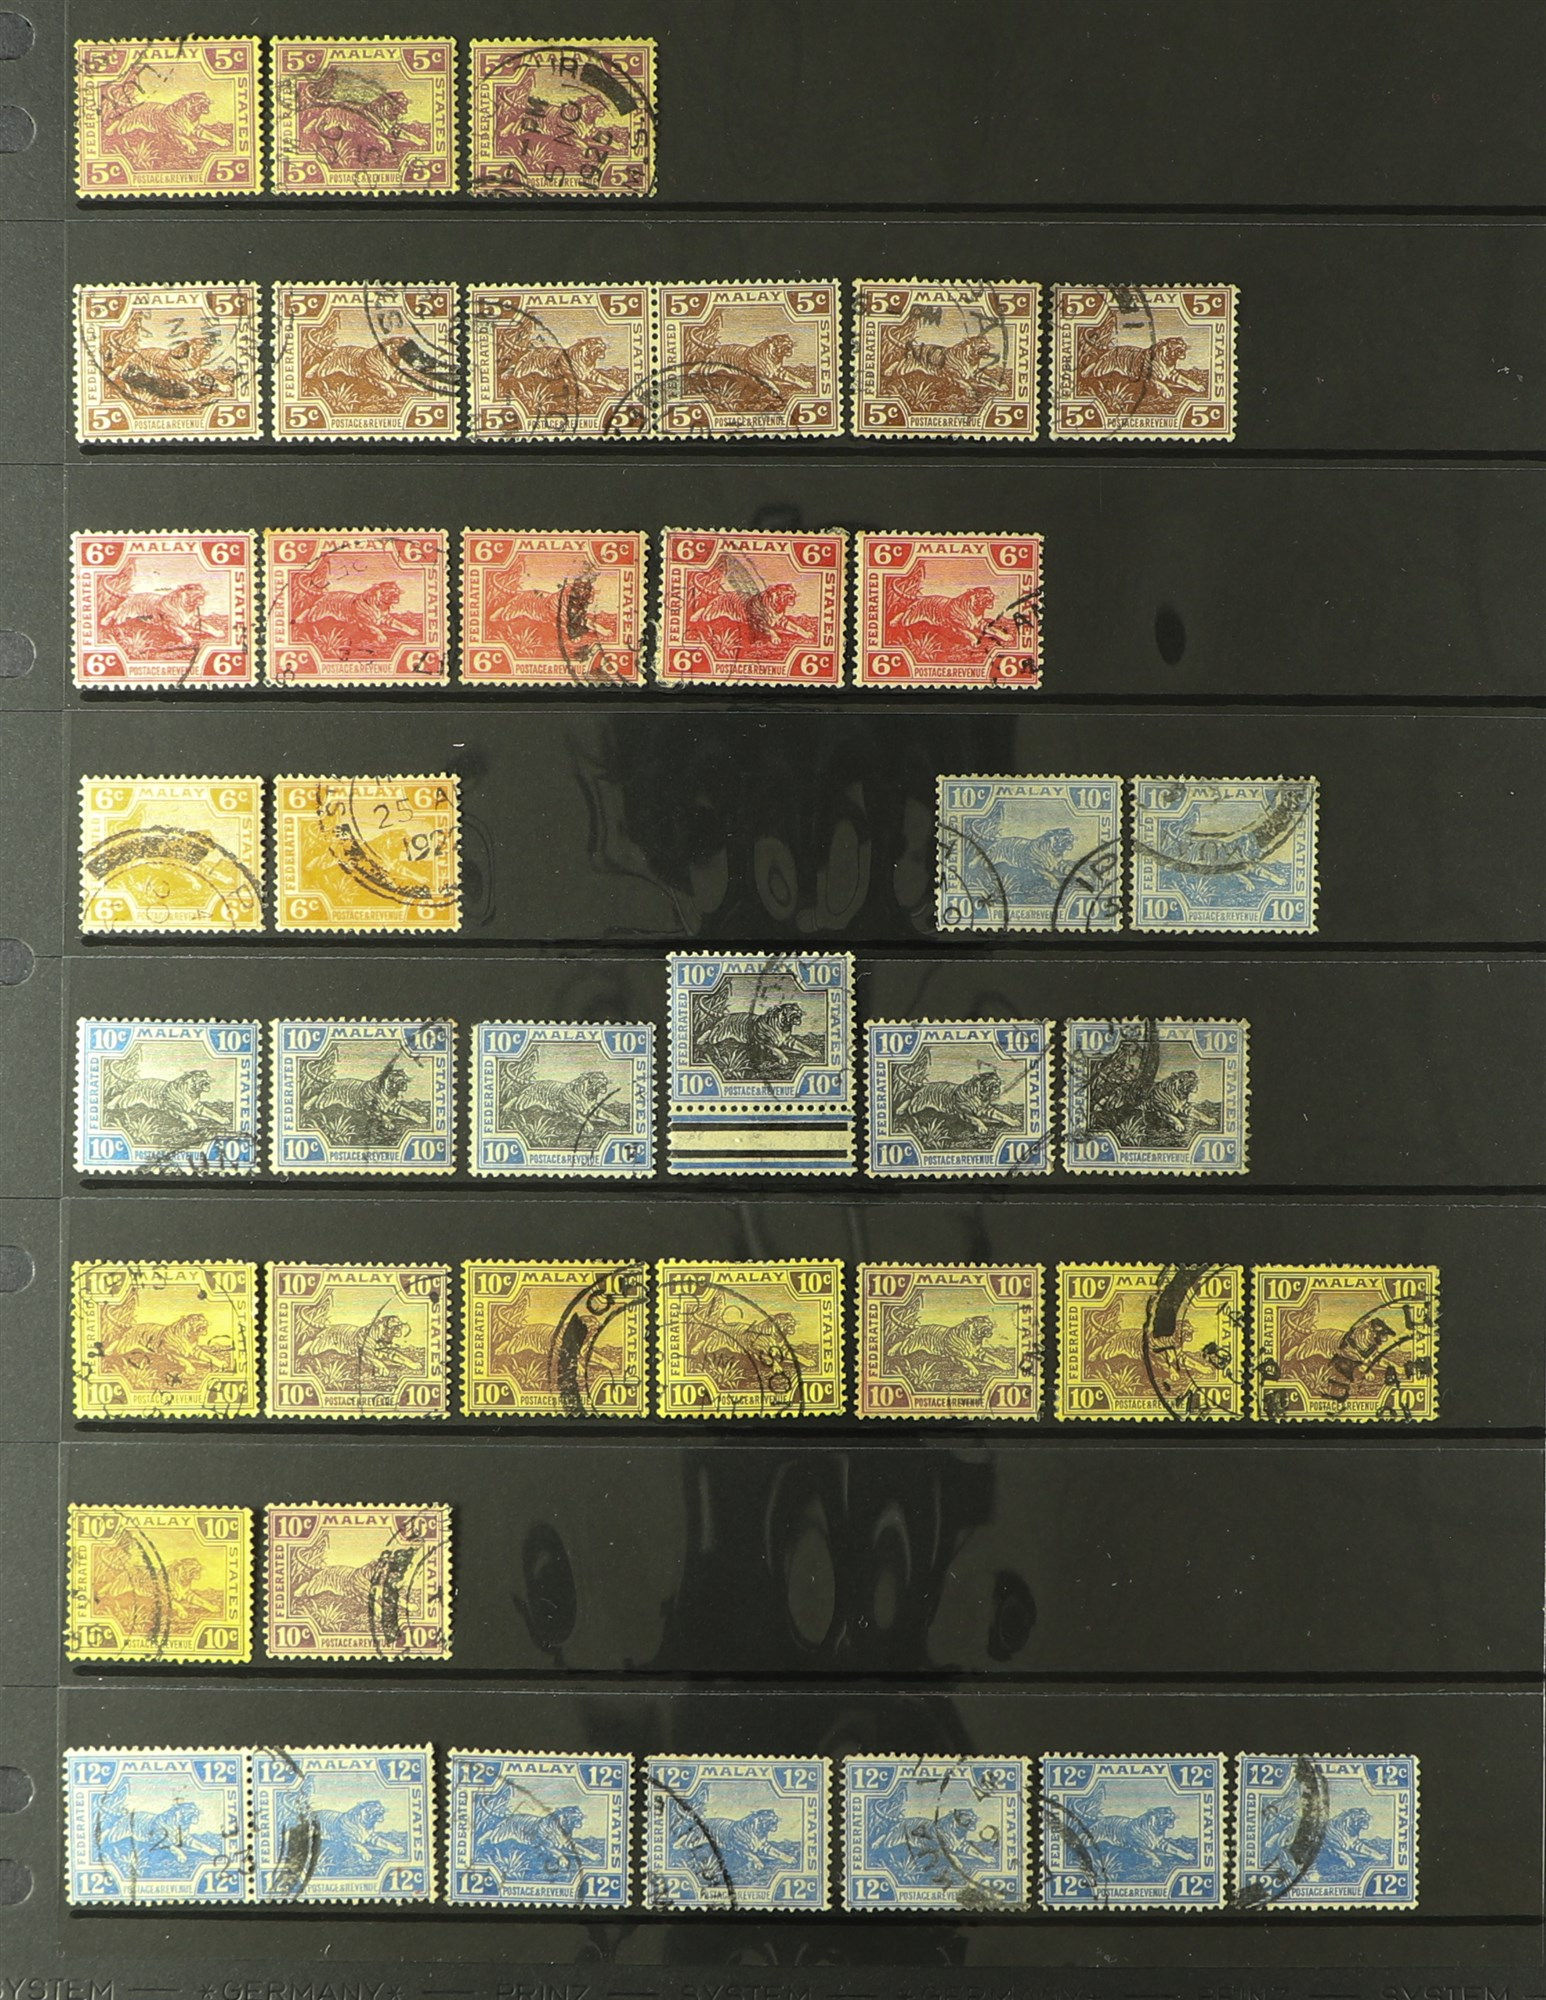 MALAYA STATES FEDERATED MALAY STATES 1900-1934 used ranges with many shades, wmk varieties & - Image 4 of 6